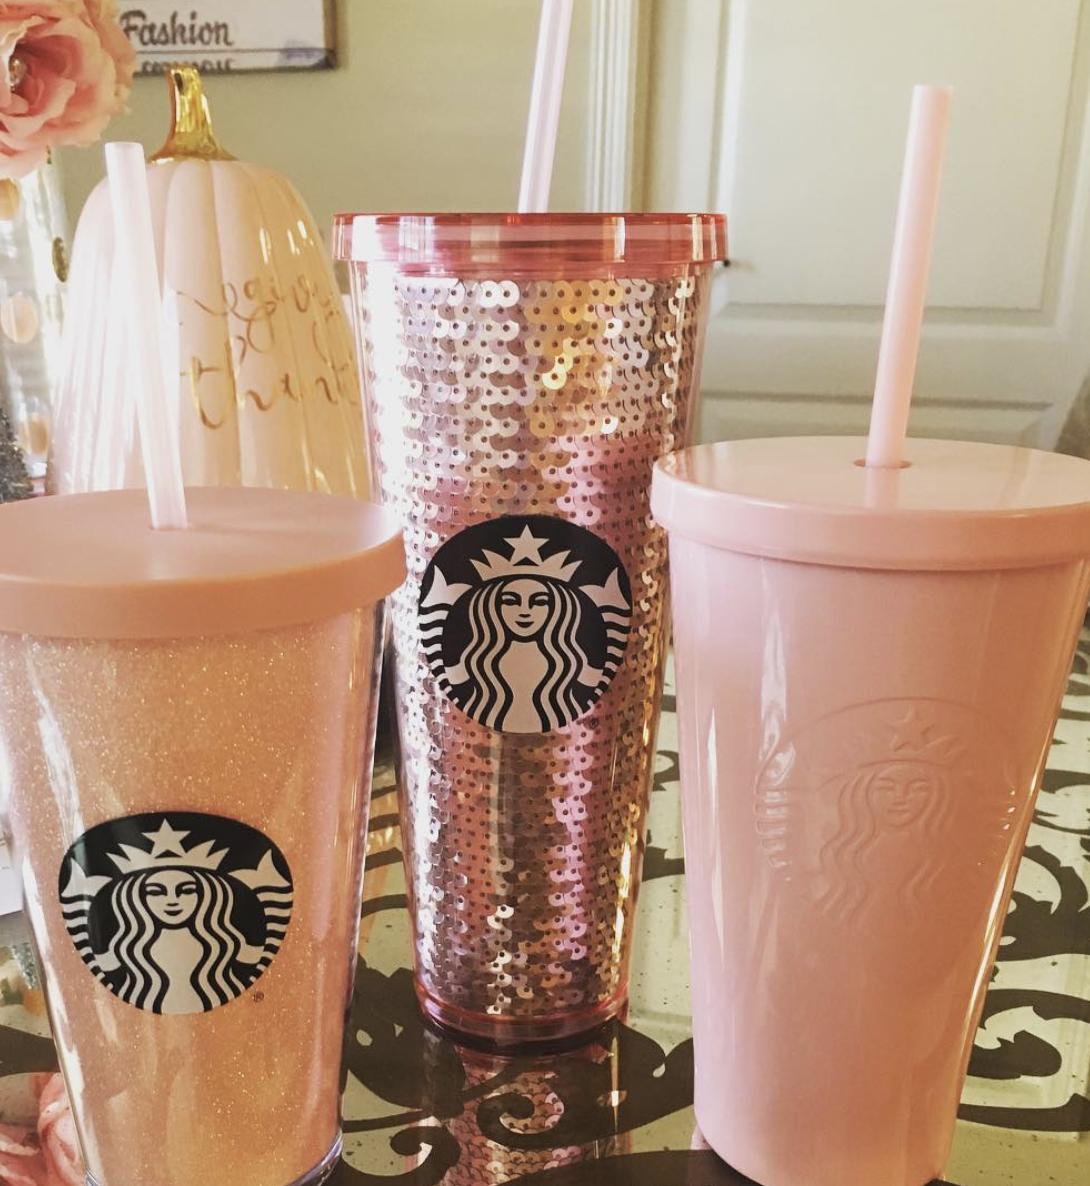 PSA Starbucks Now Has A Rose Gold Collection Of Tumblers